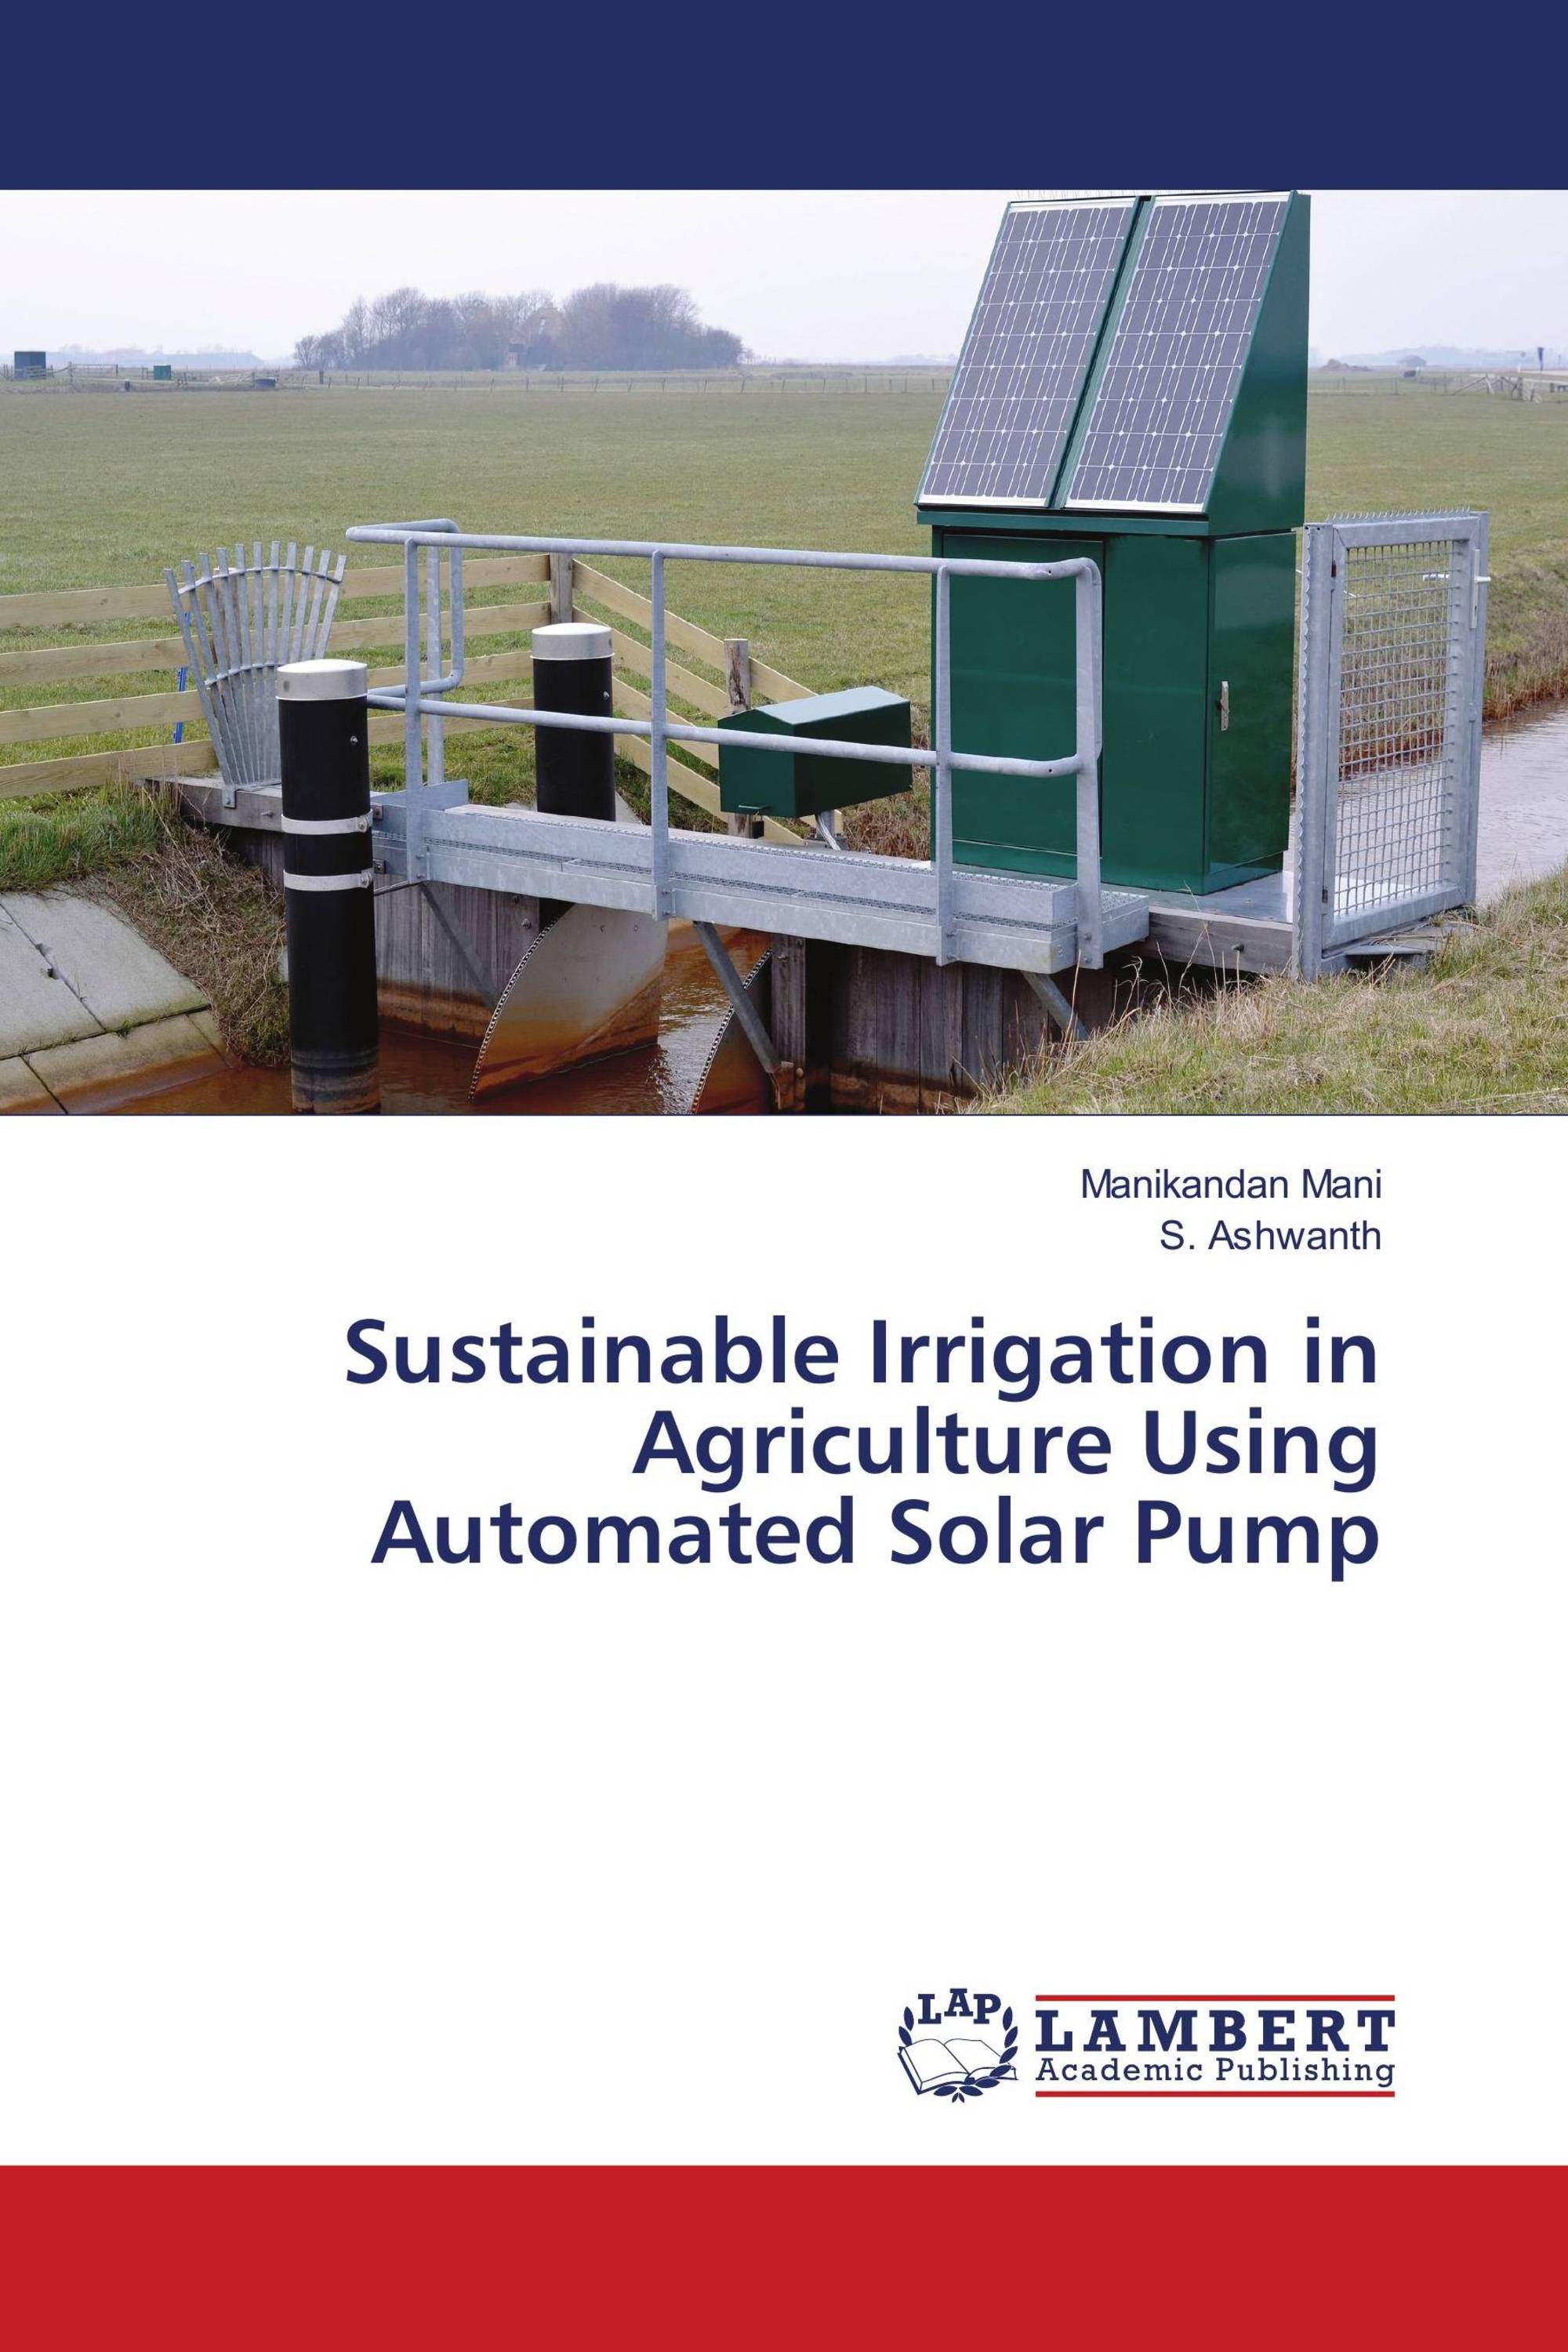 Sustainable Irrigation in Agriculture Using Automated Solar Pump